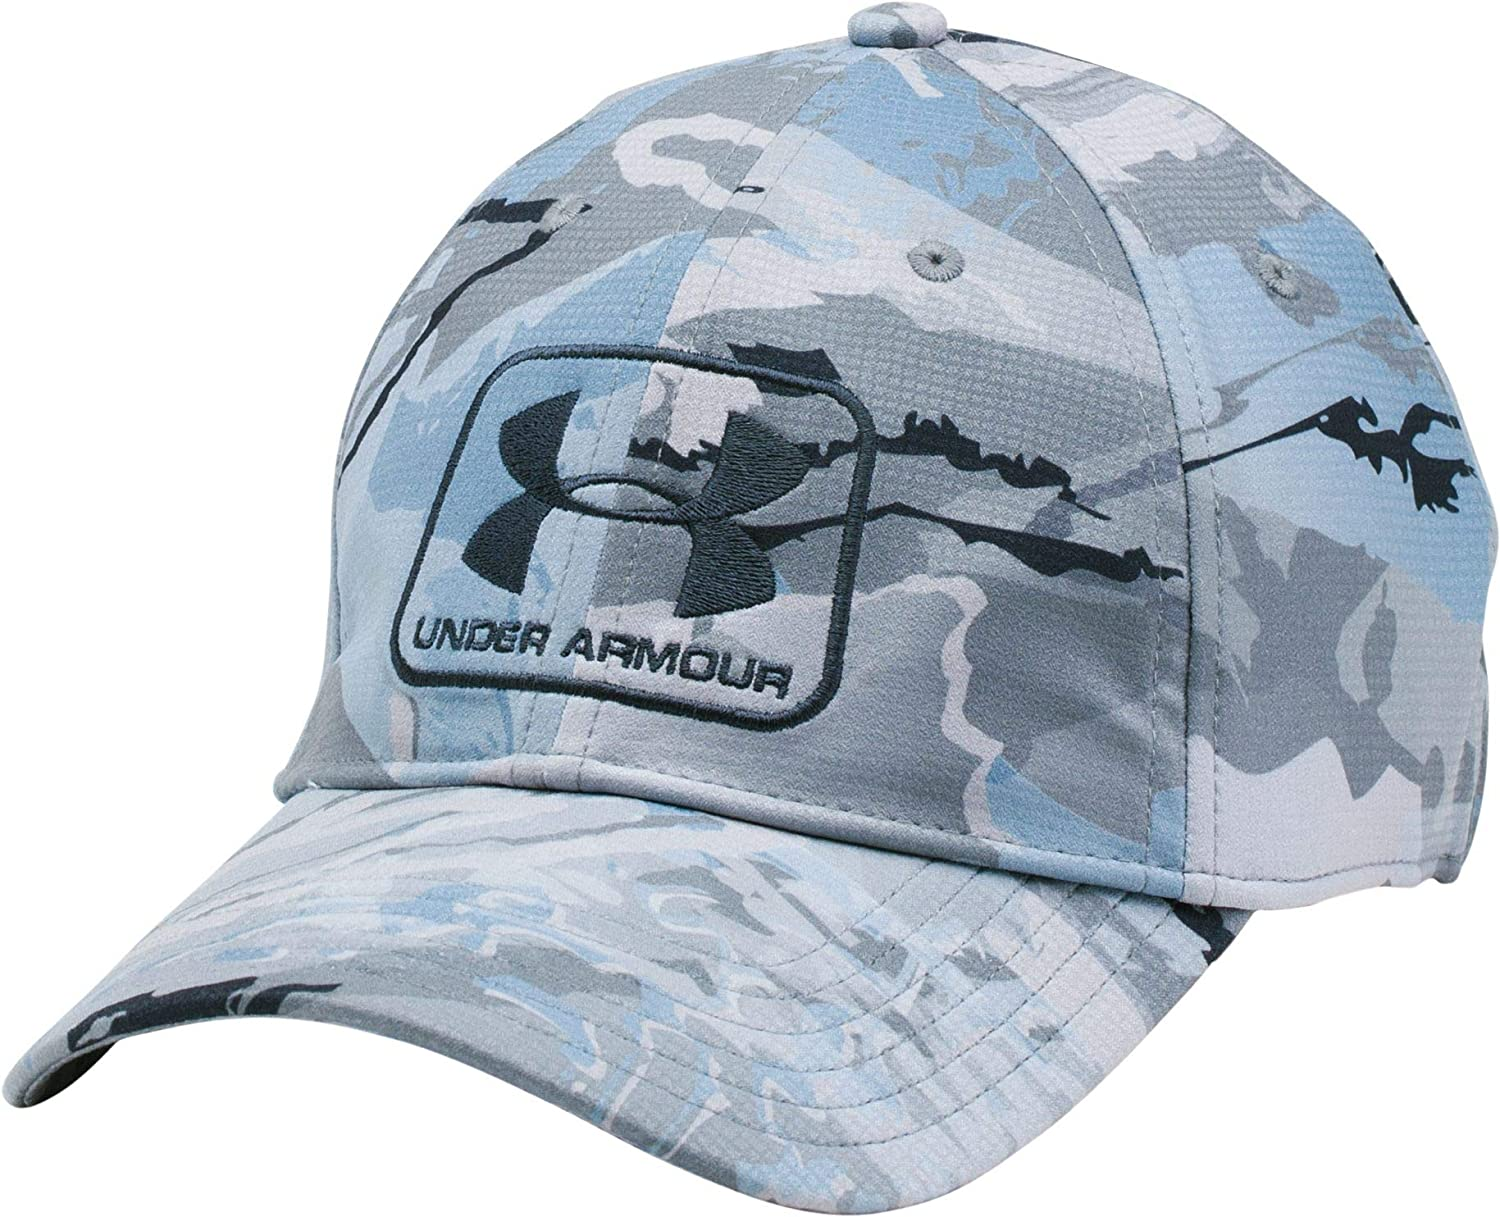 Under Armour Men s Camo Stretch Fit Cap  Amazon.ca  Sports   Outdoors eb9a100b75f8